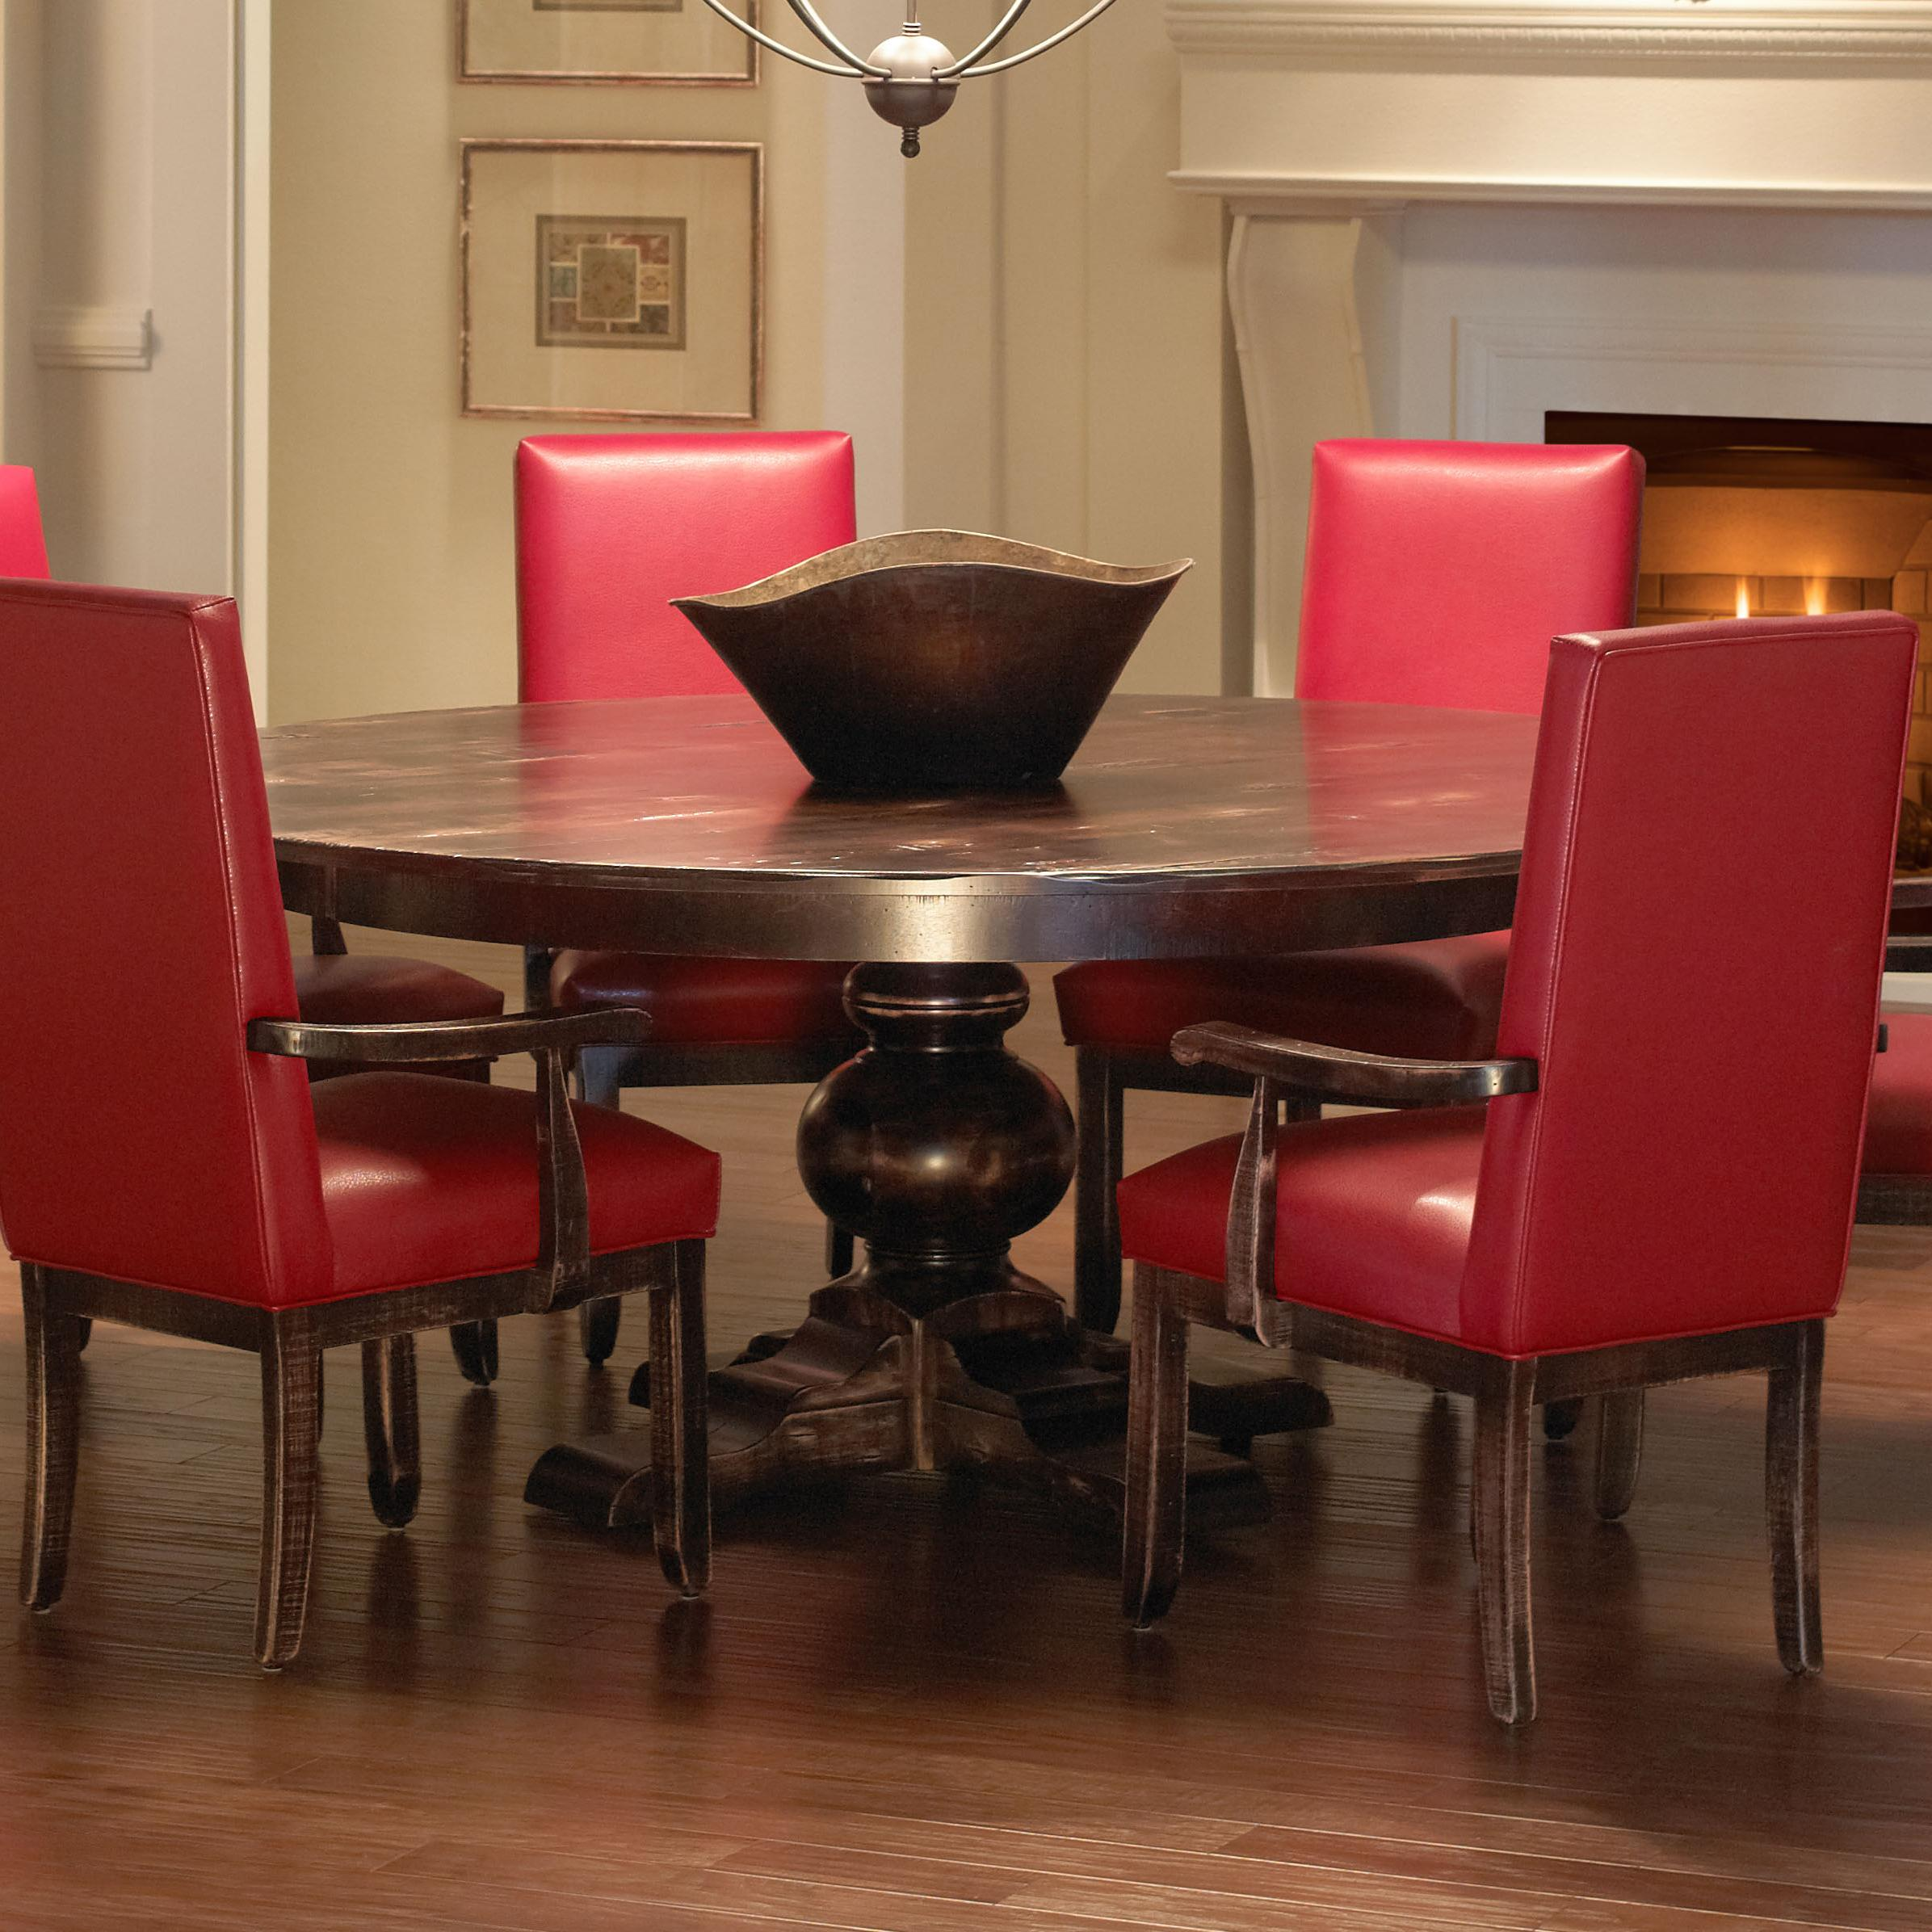 Canadel champlain custom dining customizable round for John v schultz dining room table